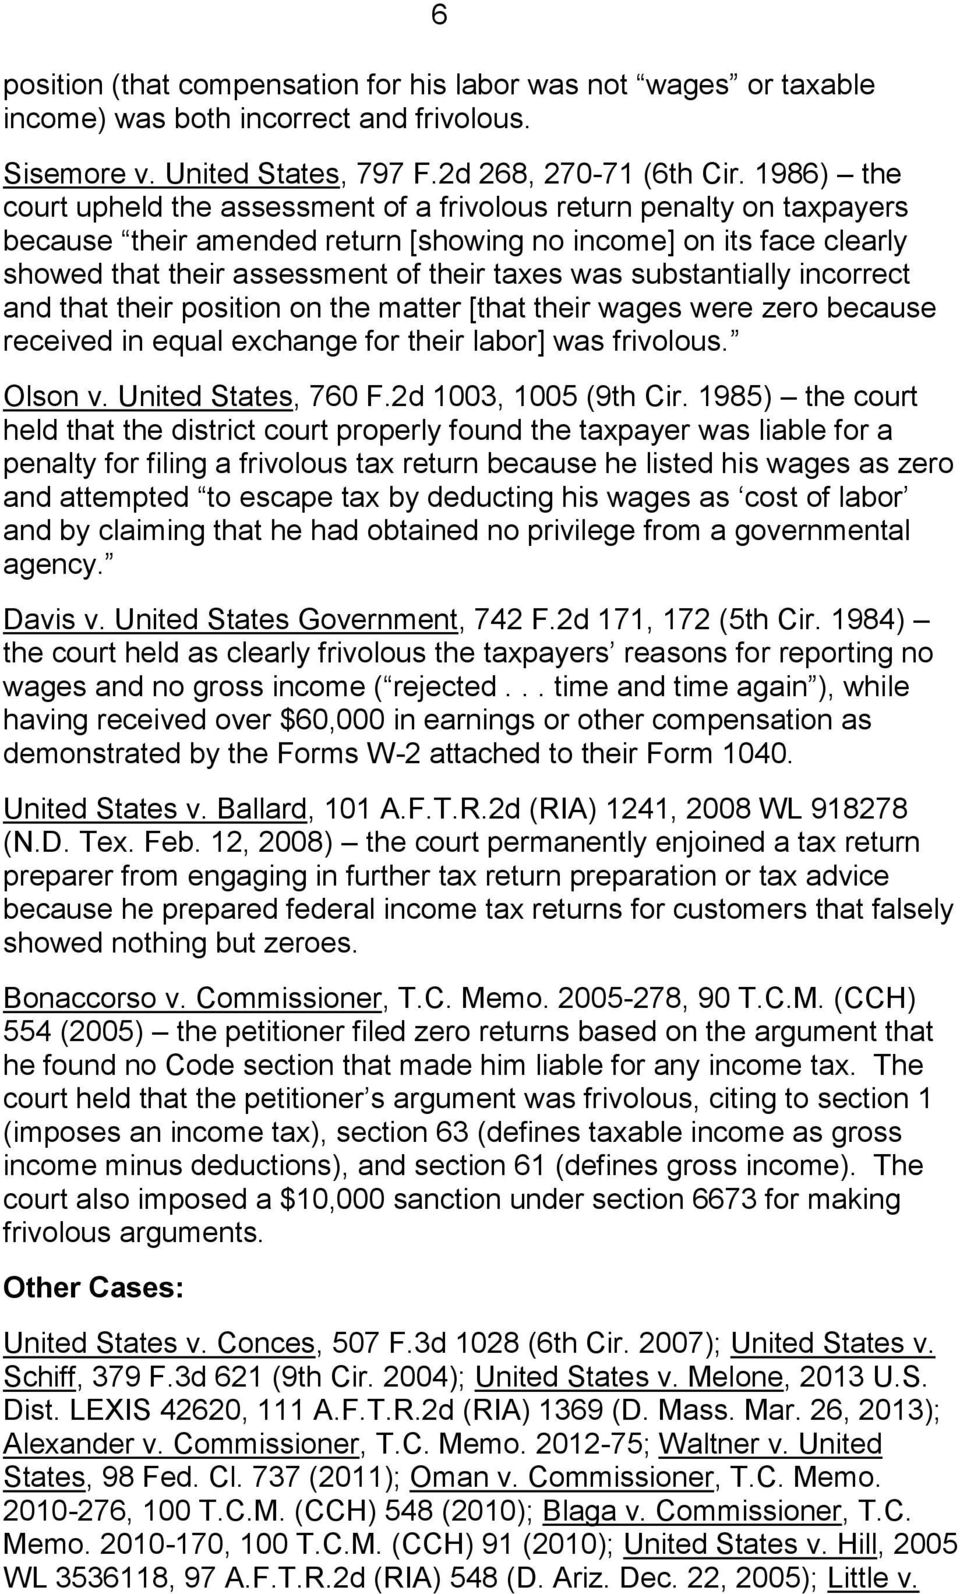 substantially incorrect and that their position on the matter [that their wages were zero because received in equal exchange for their labor] was frivolous. Olson v. United States, 760 F.